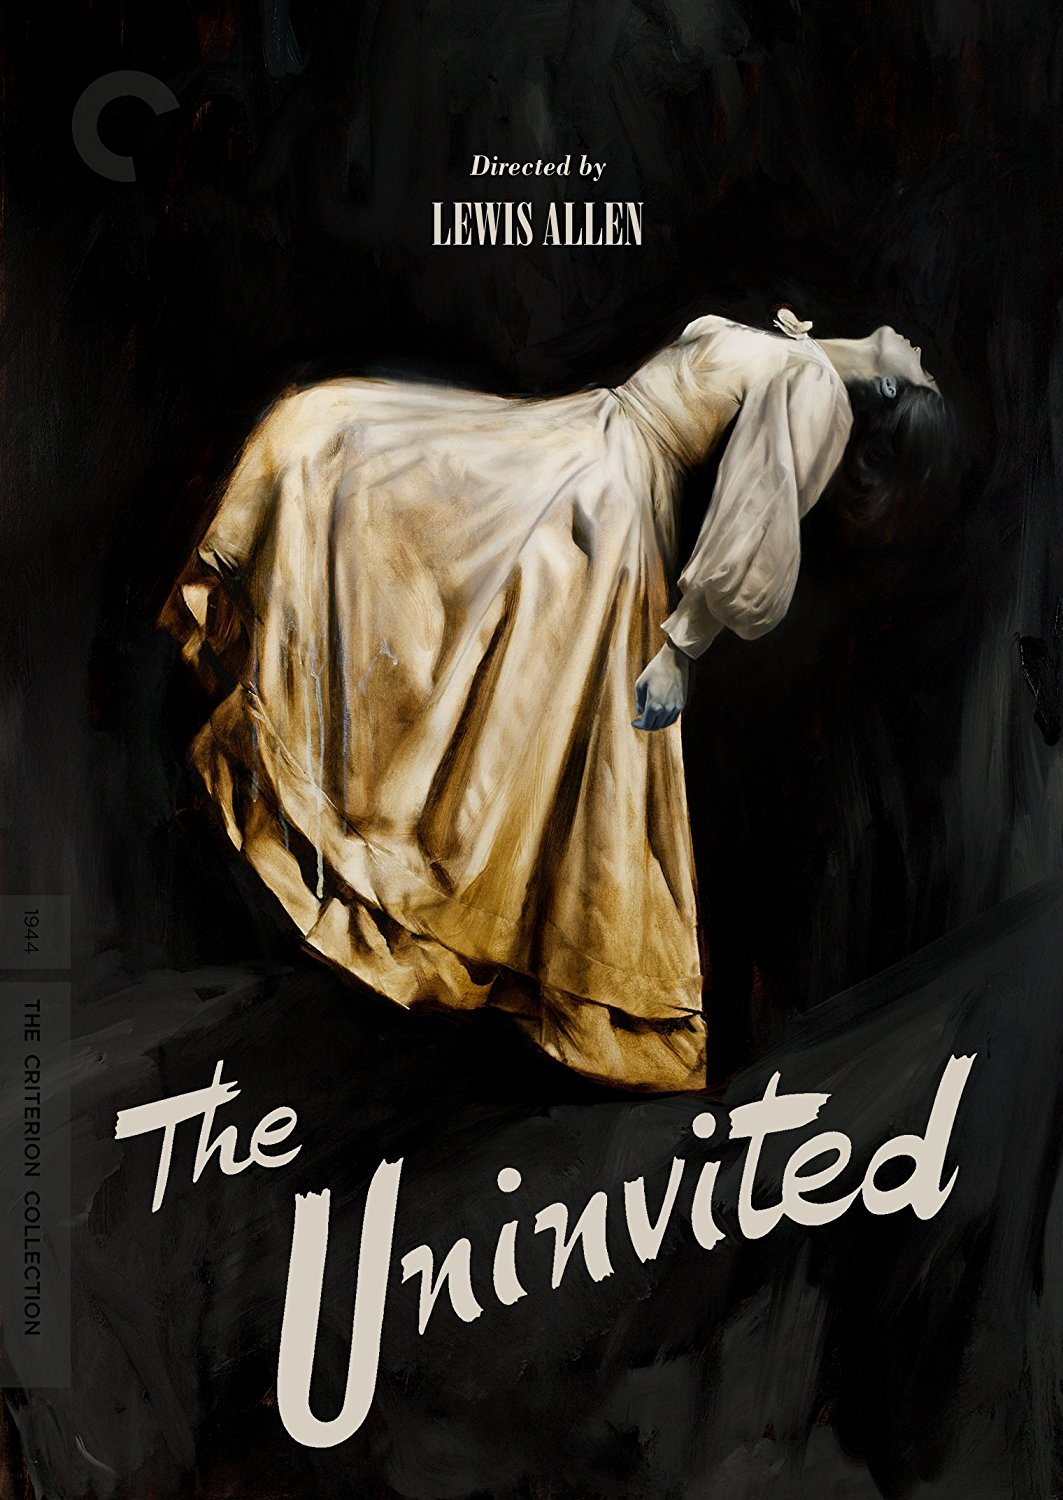 The Uninvited (1944), starring Ray Milland, Ruth Hussey, Gail Russell